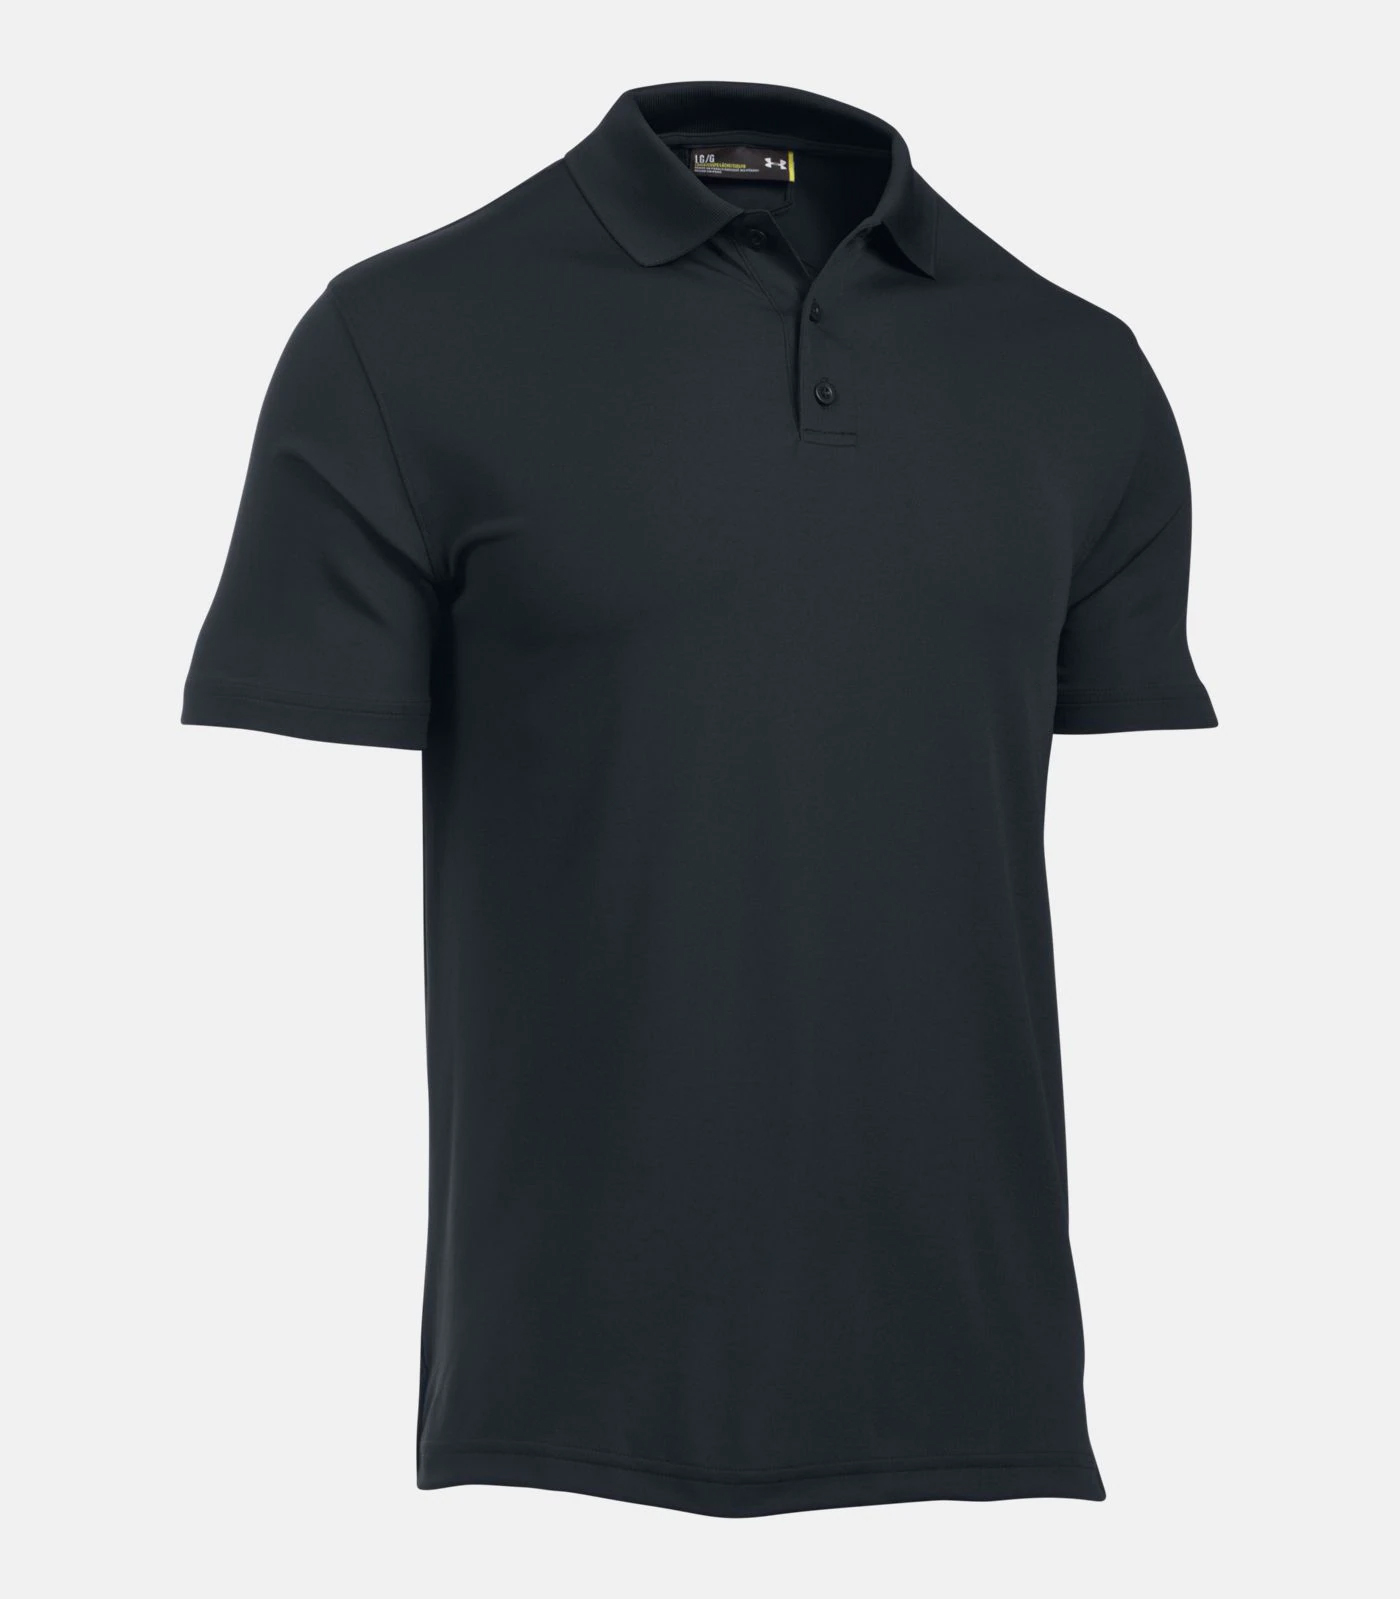 MENS_POLO_TacPerformance-SS_UAR1279759465_02